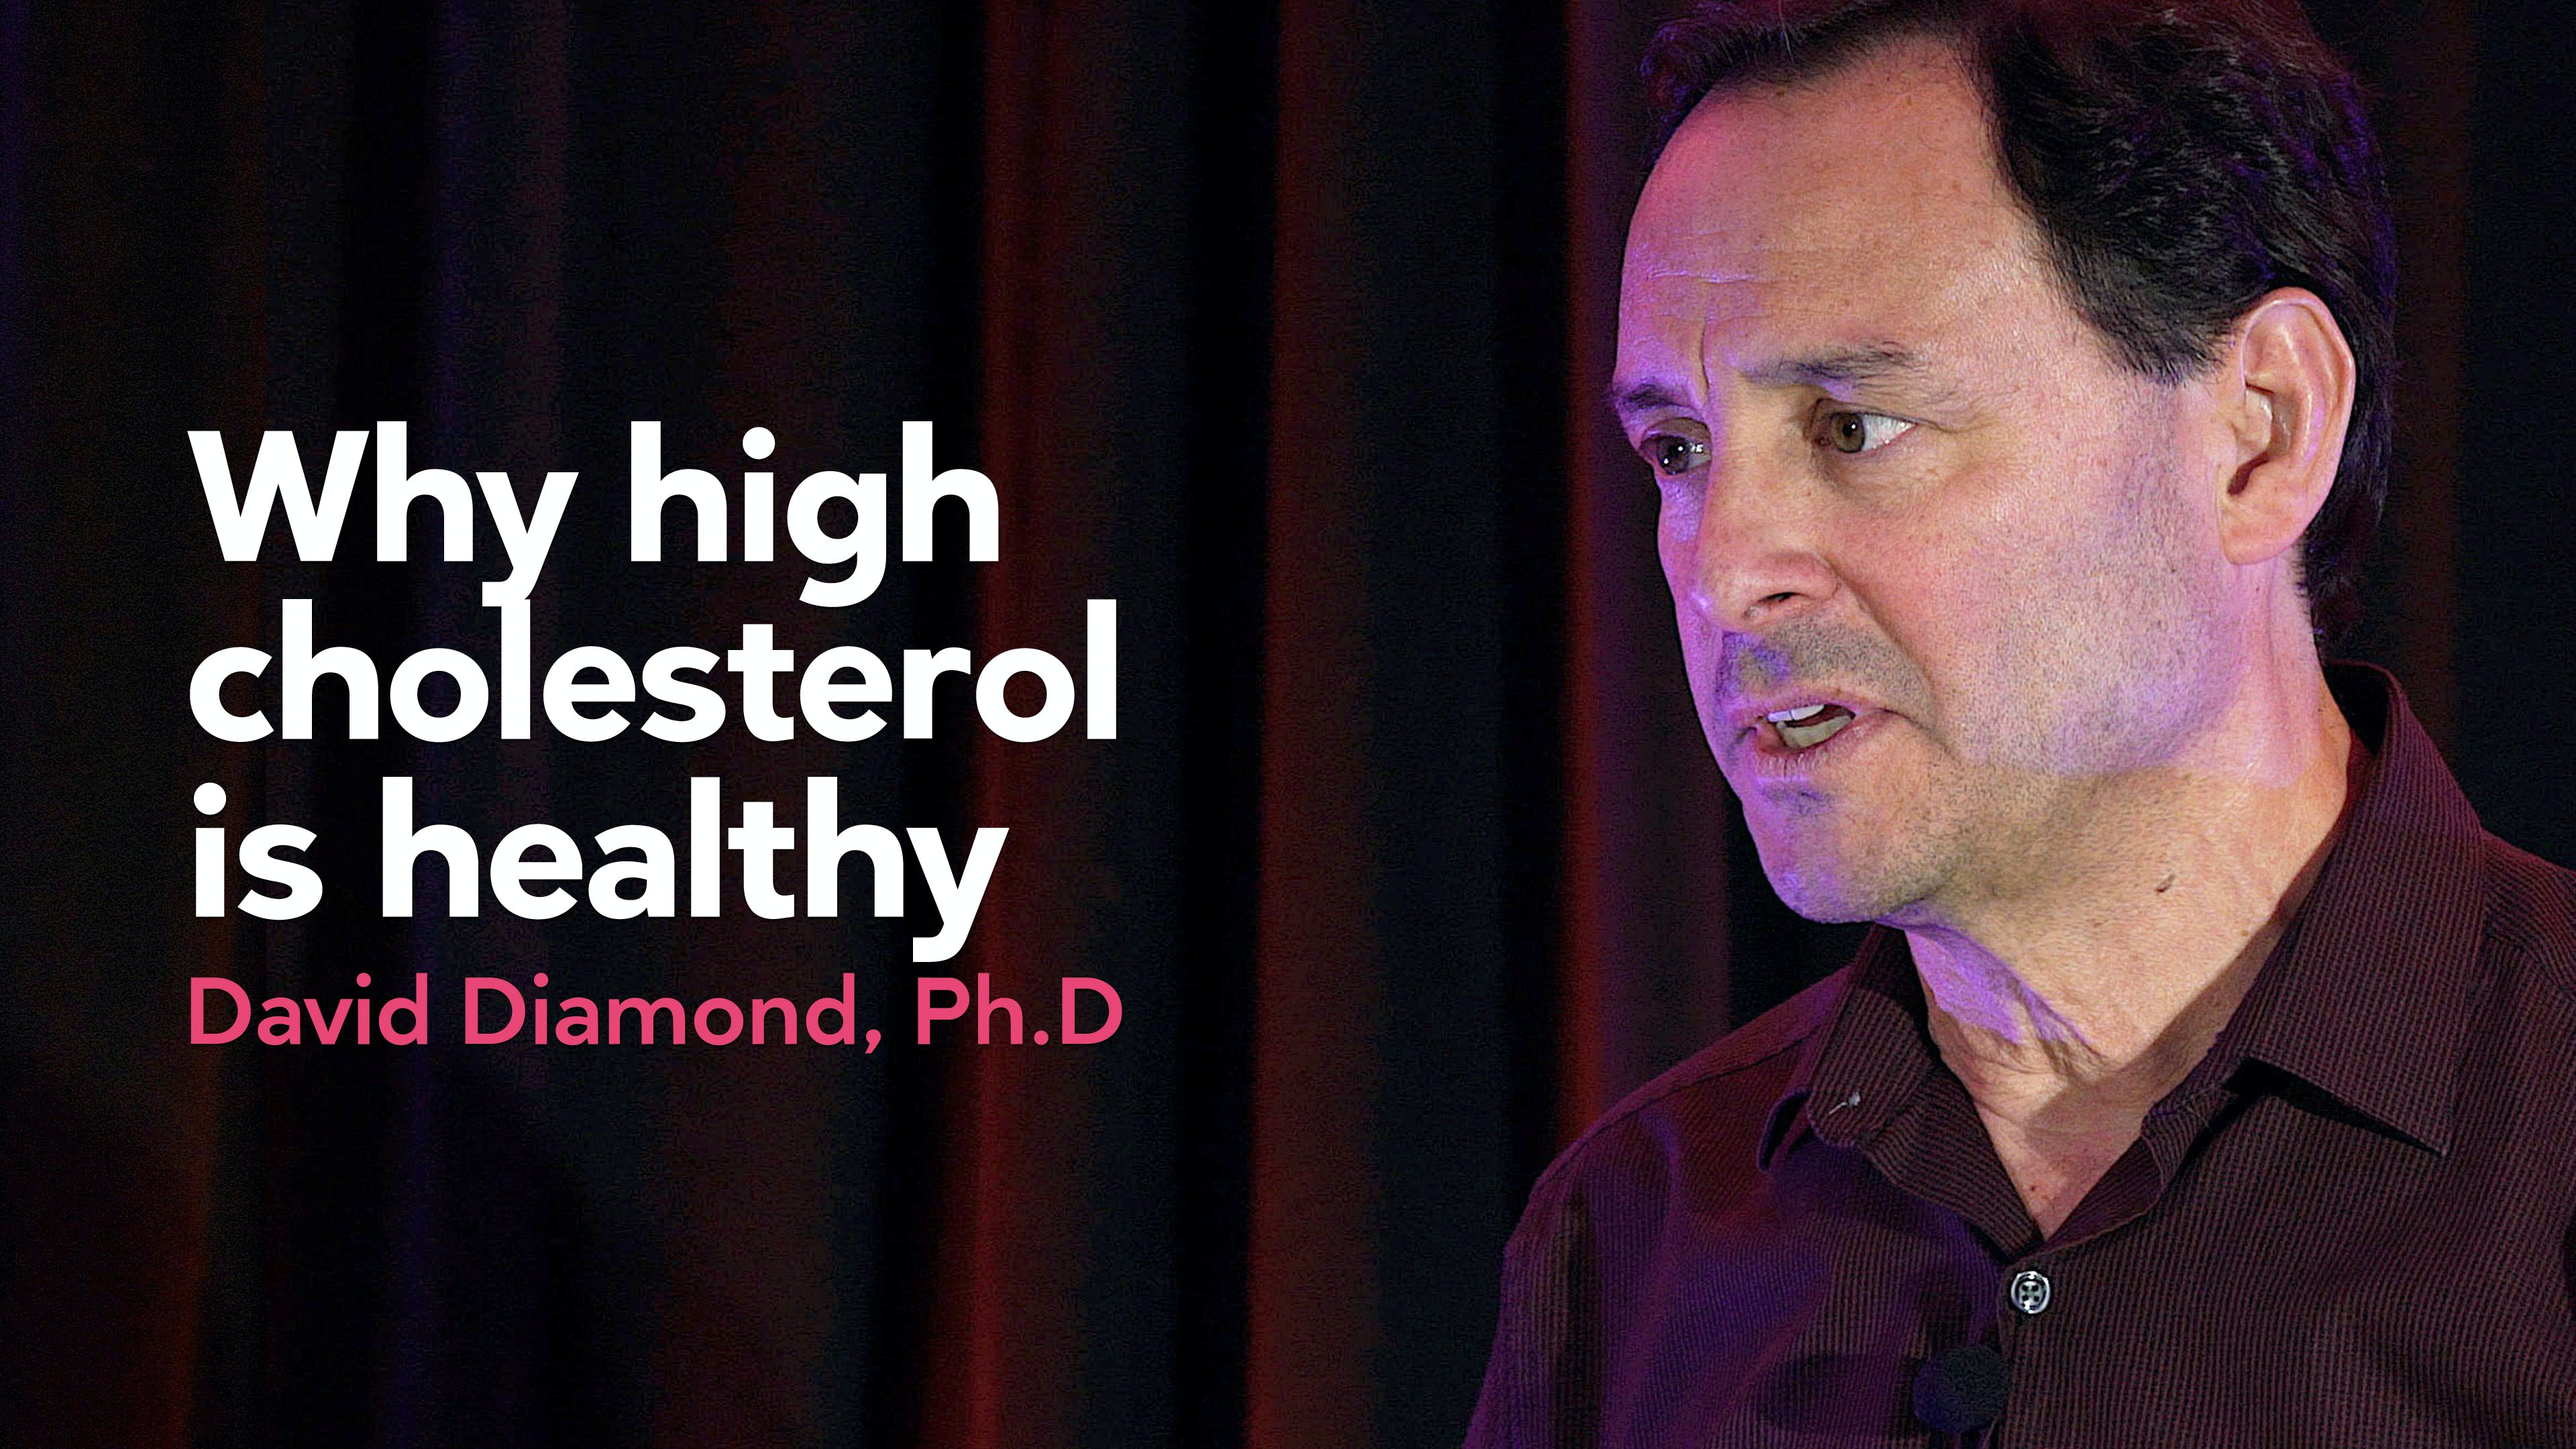 Why high cholesterol is healthy